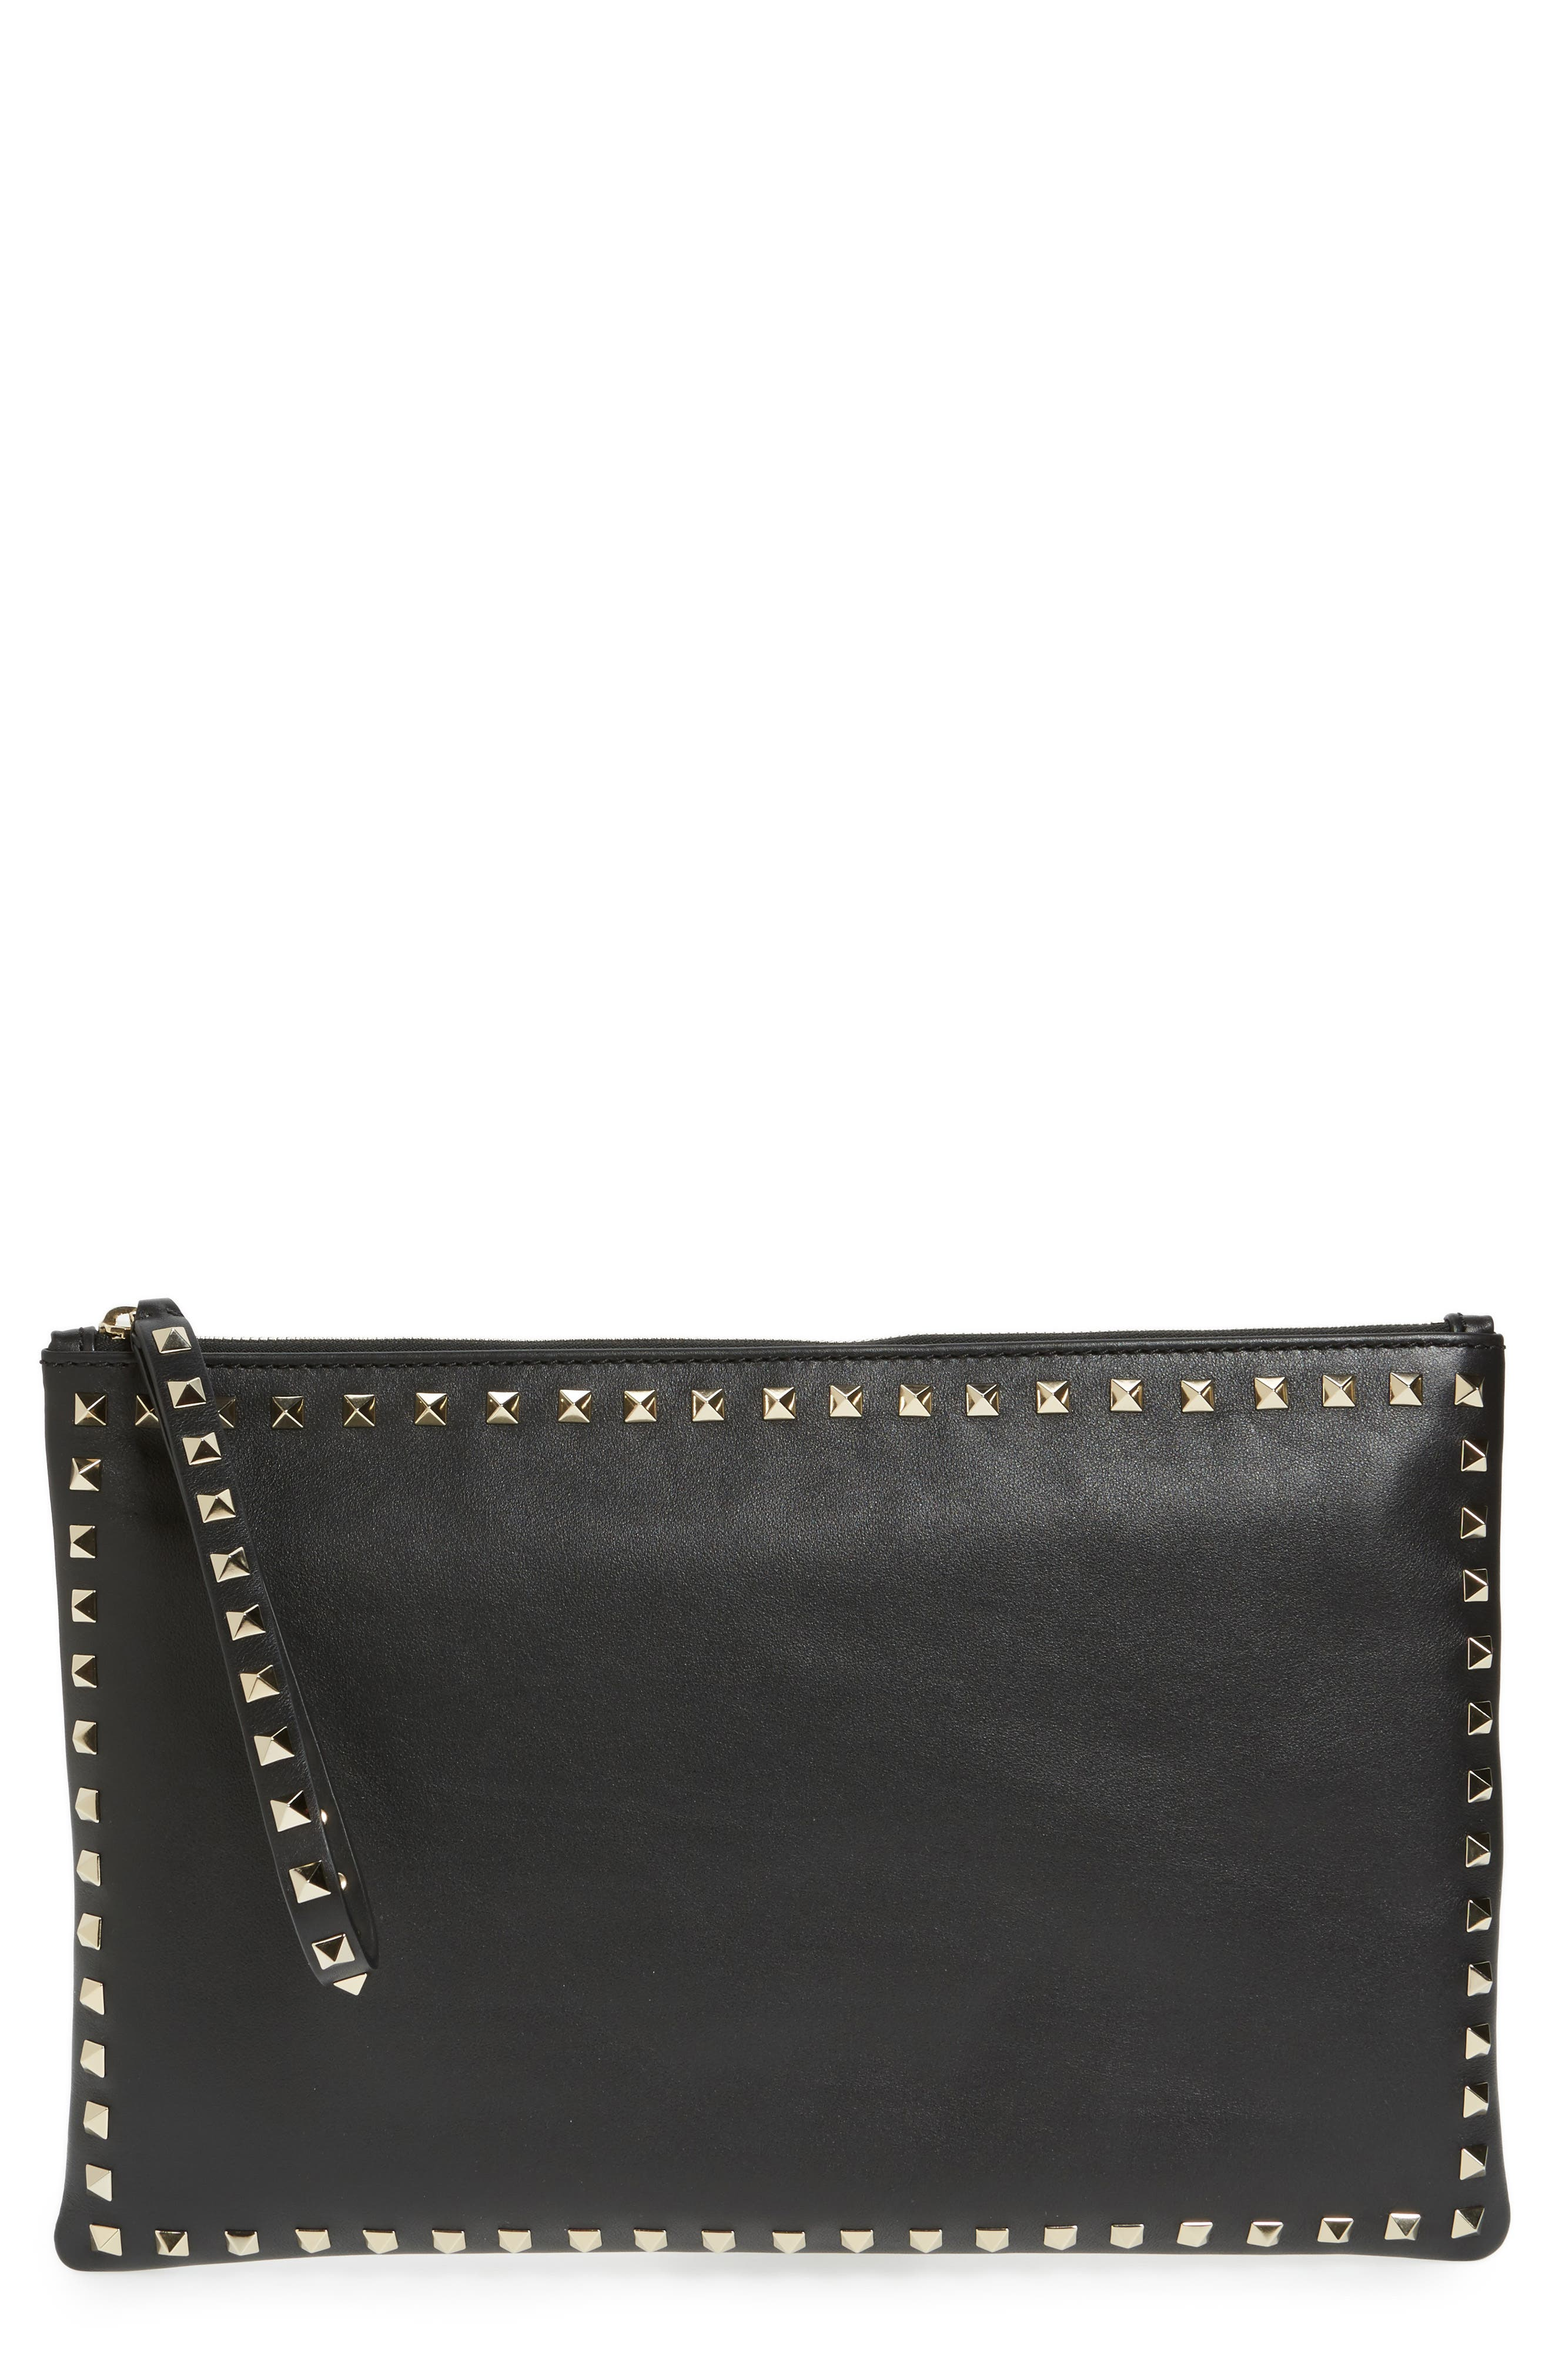 'Rockstud' Clutch in Black